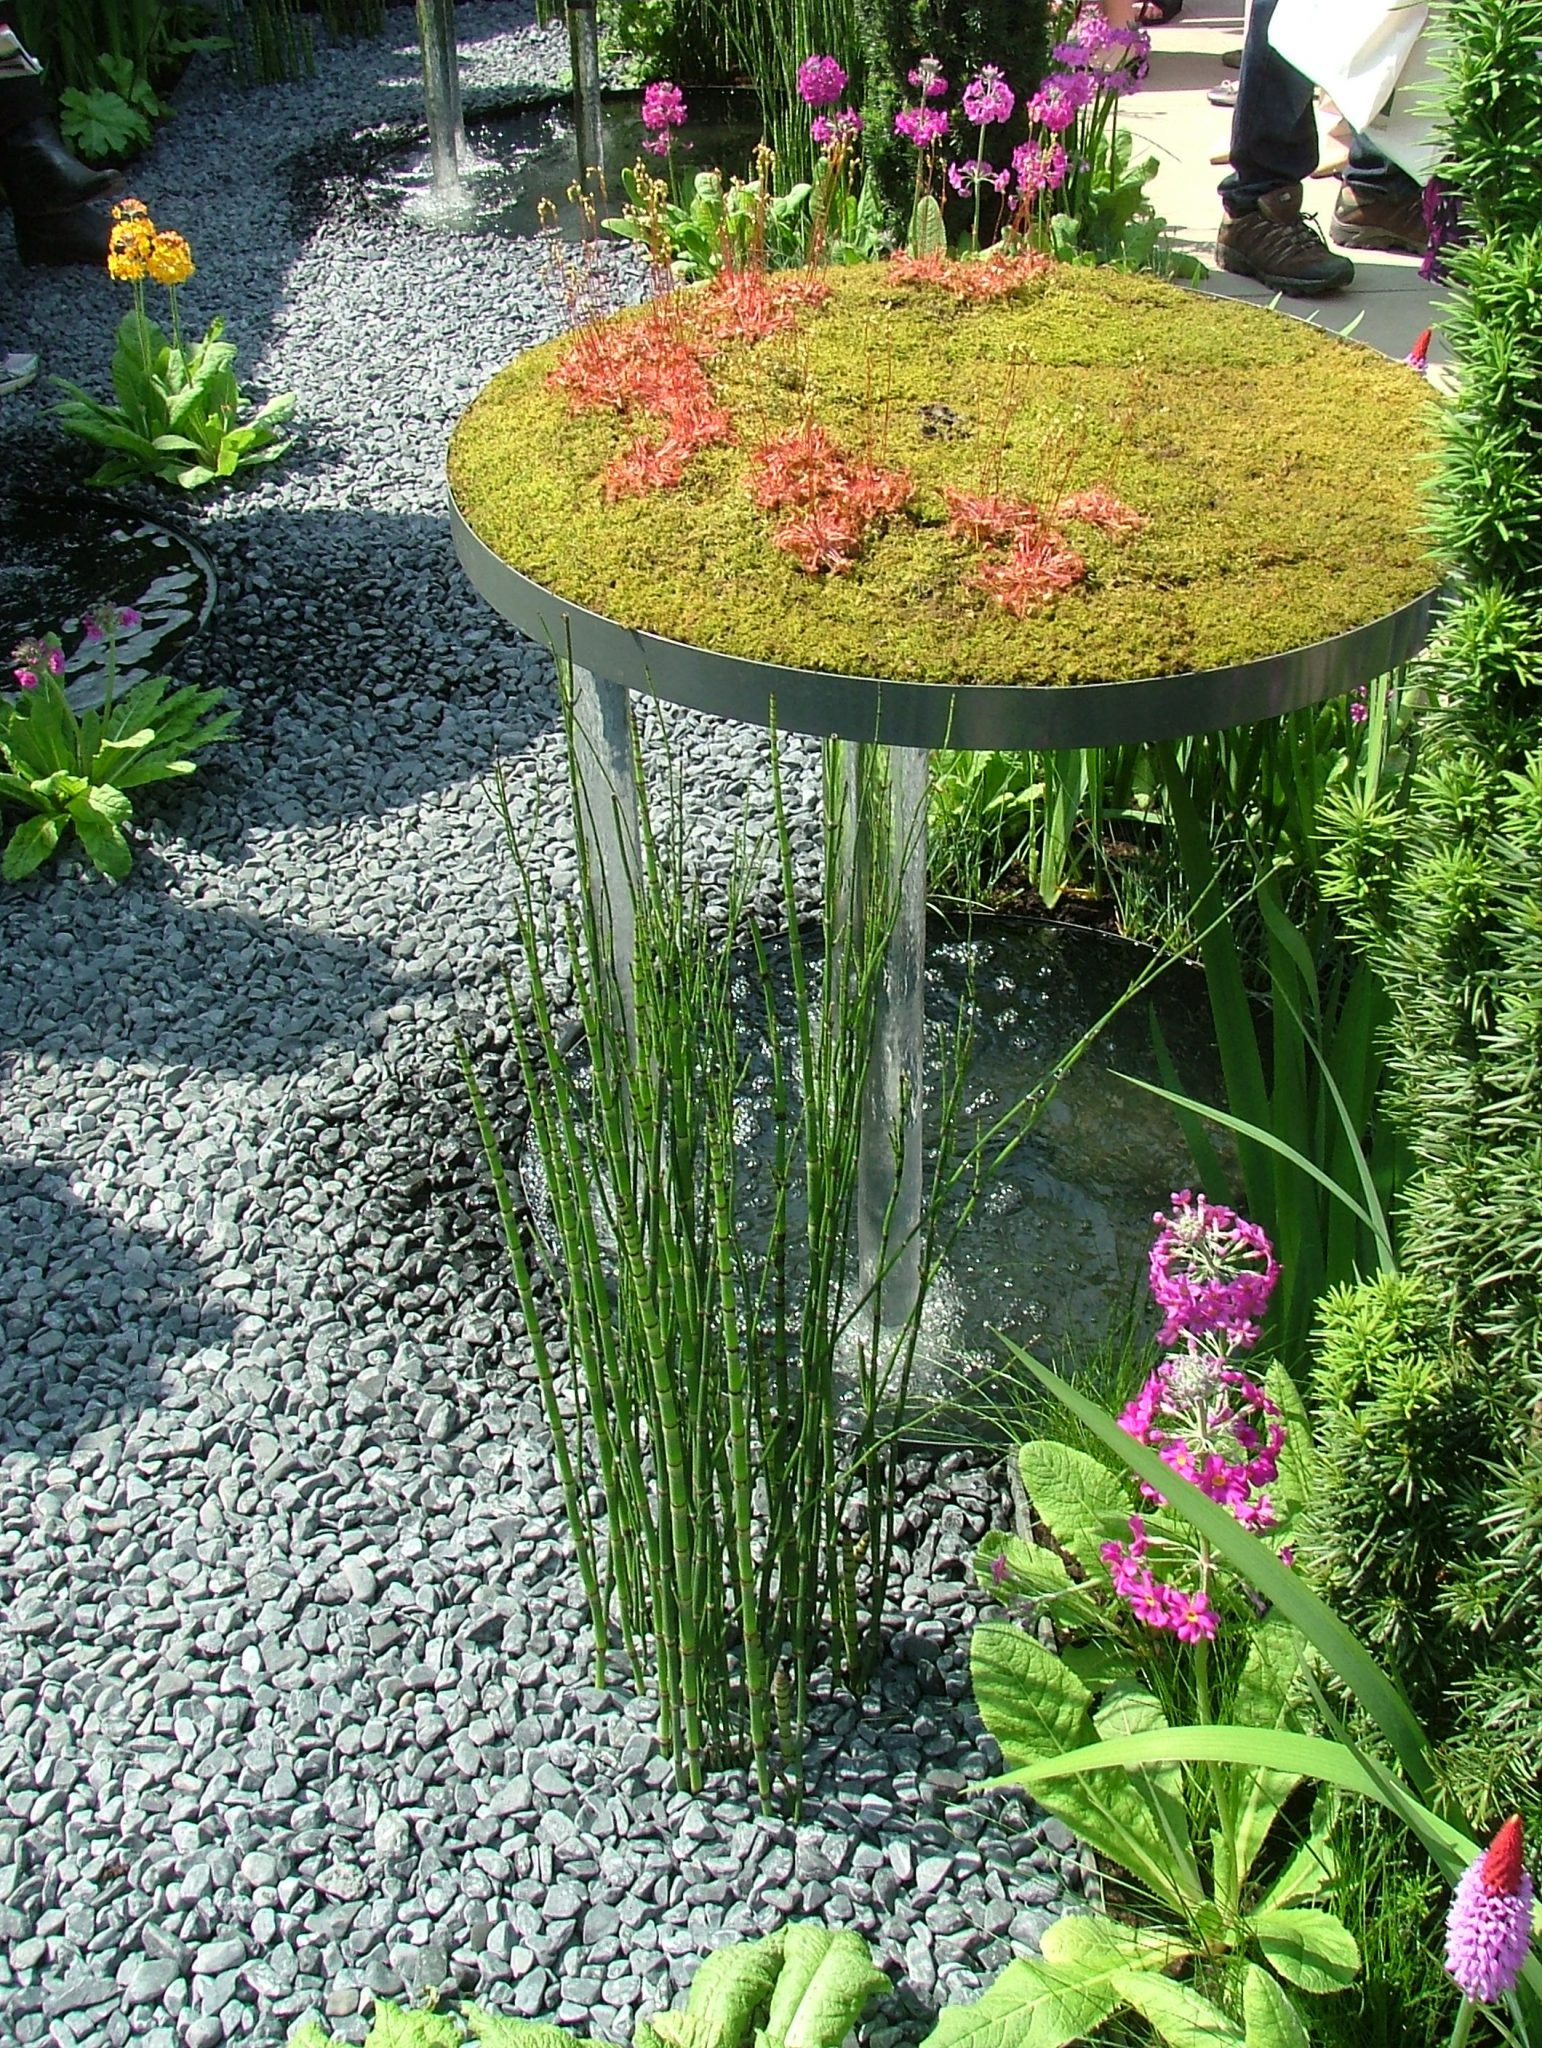 At the Chelsea Flower Show in May 2012. Photo by Anne Guy.